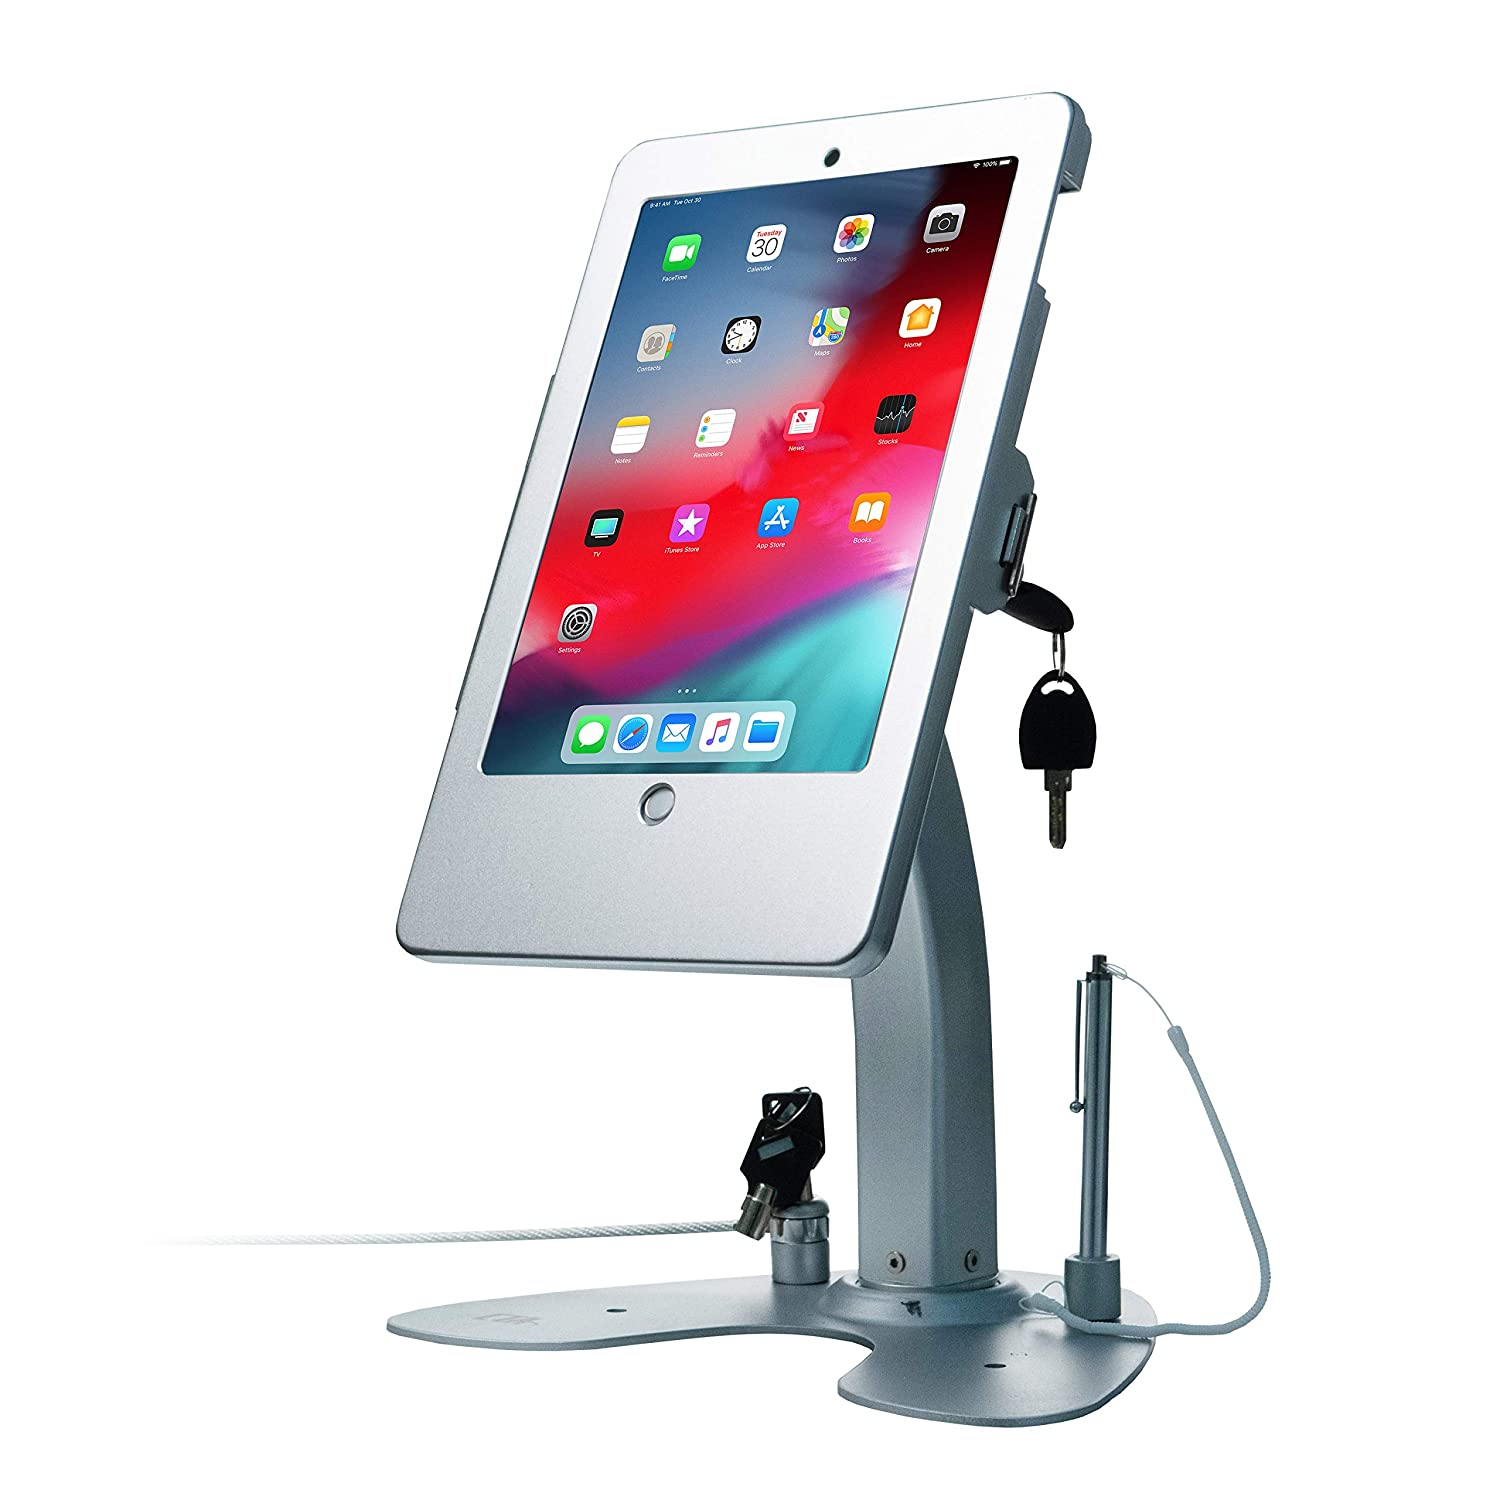 CTA Digital PAD-ASKDual Security Kiosk Stand with Locking Case and Cable for iPad Gen. 5 (2017), iPad Gen. 6 (2018), iPad Air, and iPad Pro 9.7